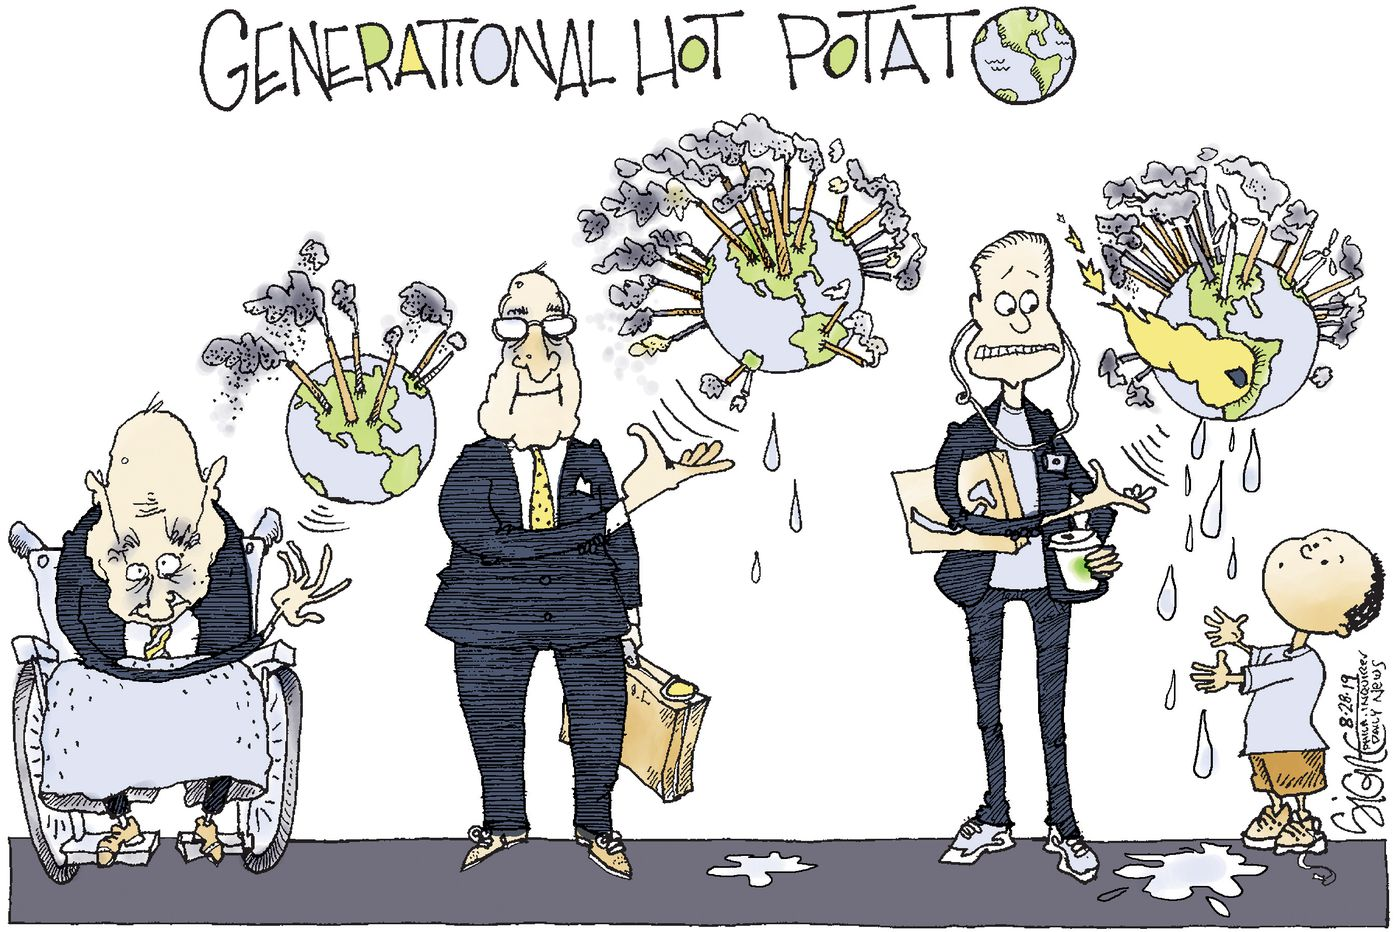 Political Cartoon: Kids! Have we got a hot potato world for you!